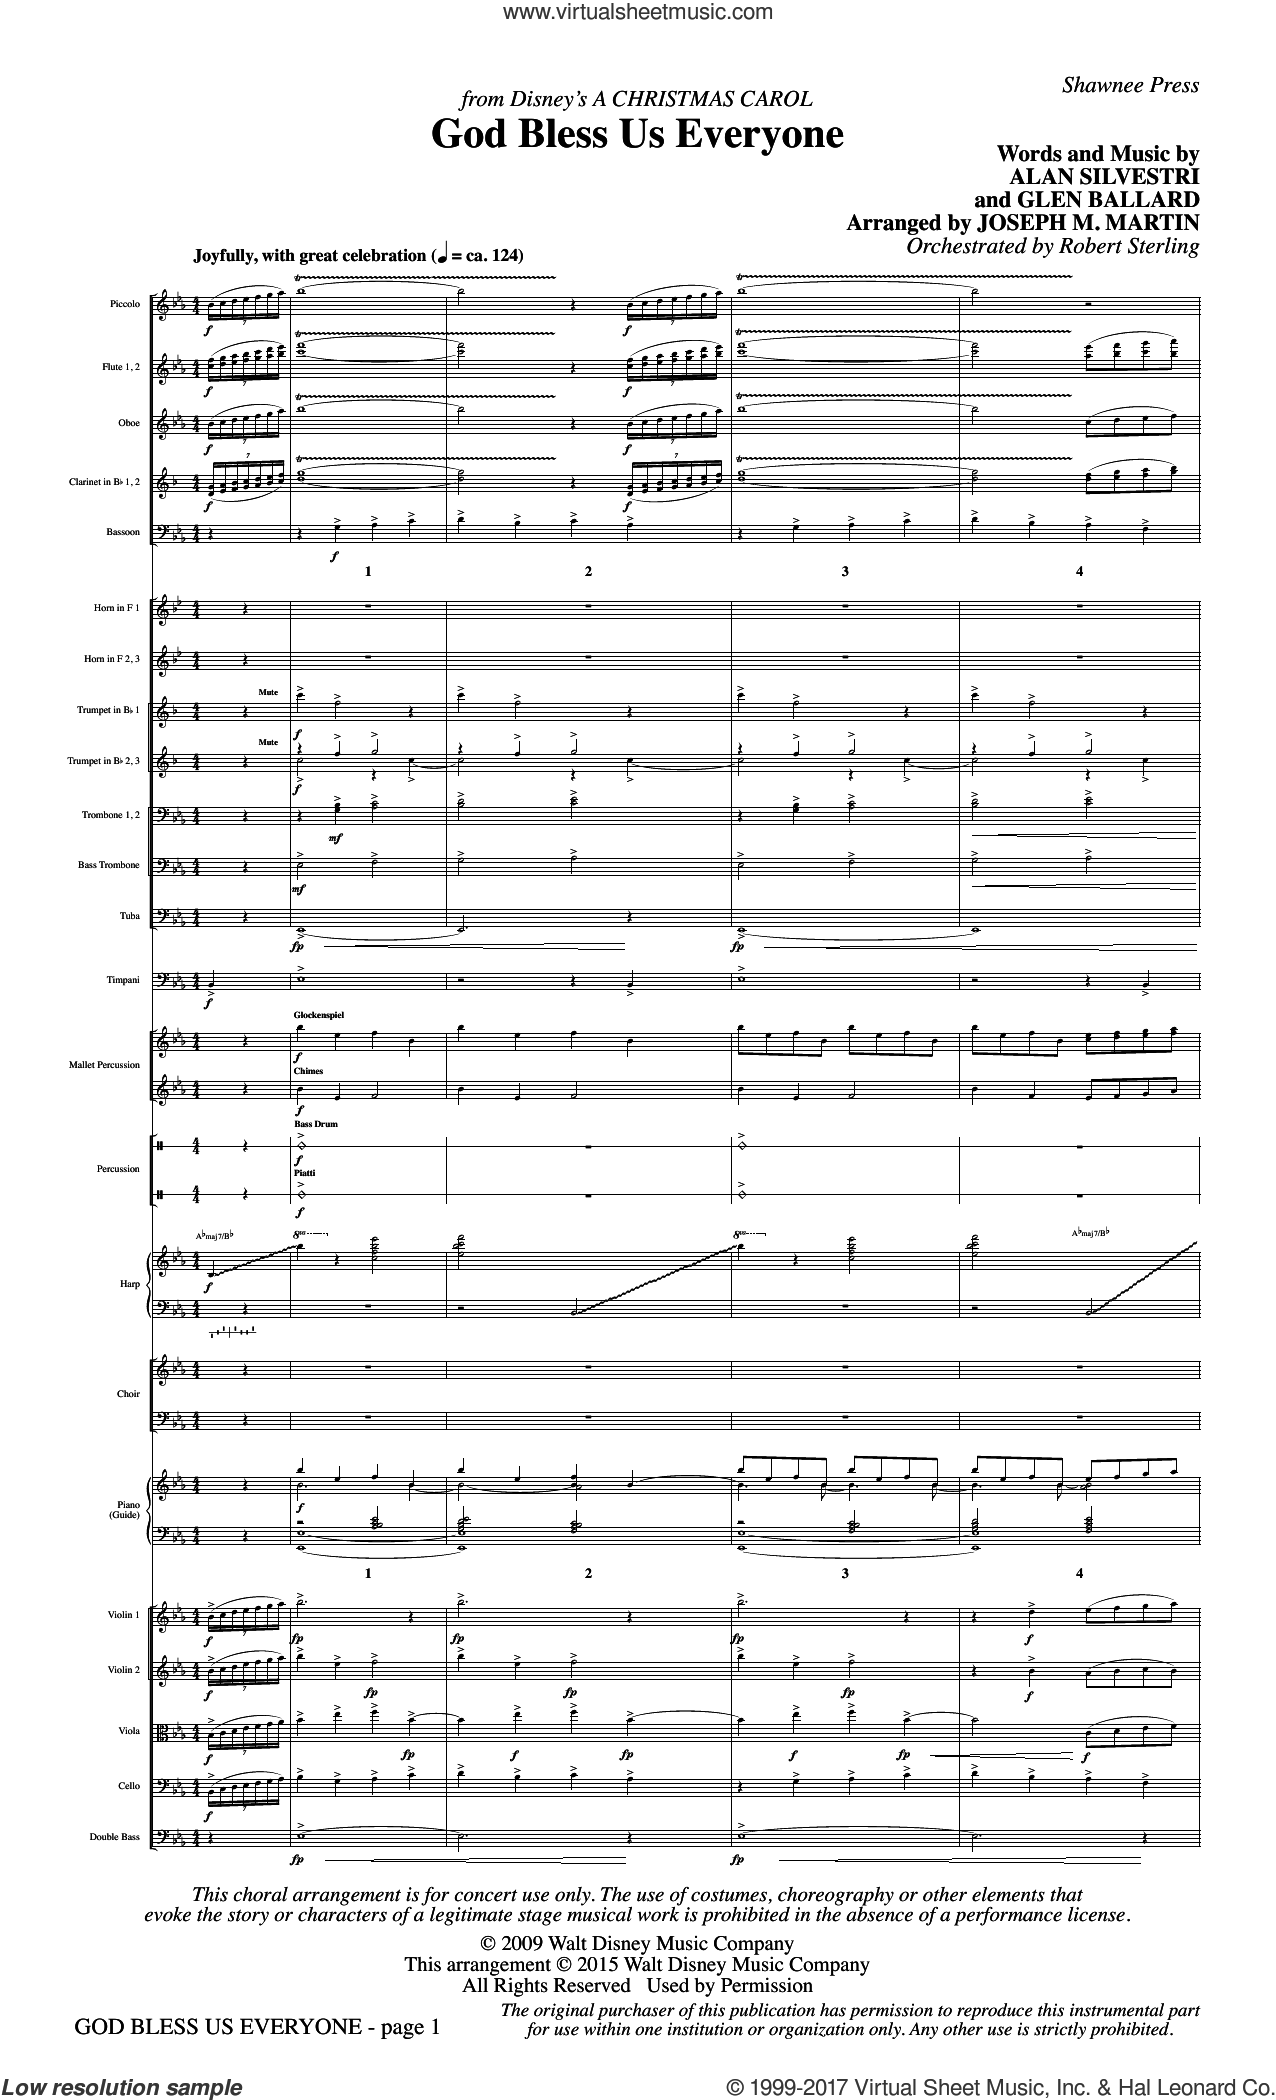 God Bless Us Everyone (from Disney's A Christmas Carol) (COMPLETE) sheet music for orchestra/band by Joseph M. Martin, Alan Silvestri, Andrea Bocelli and Glen Ballard, intermediate